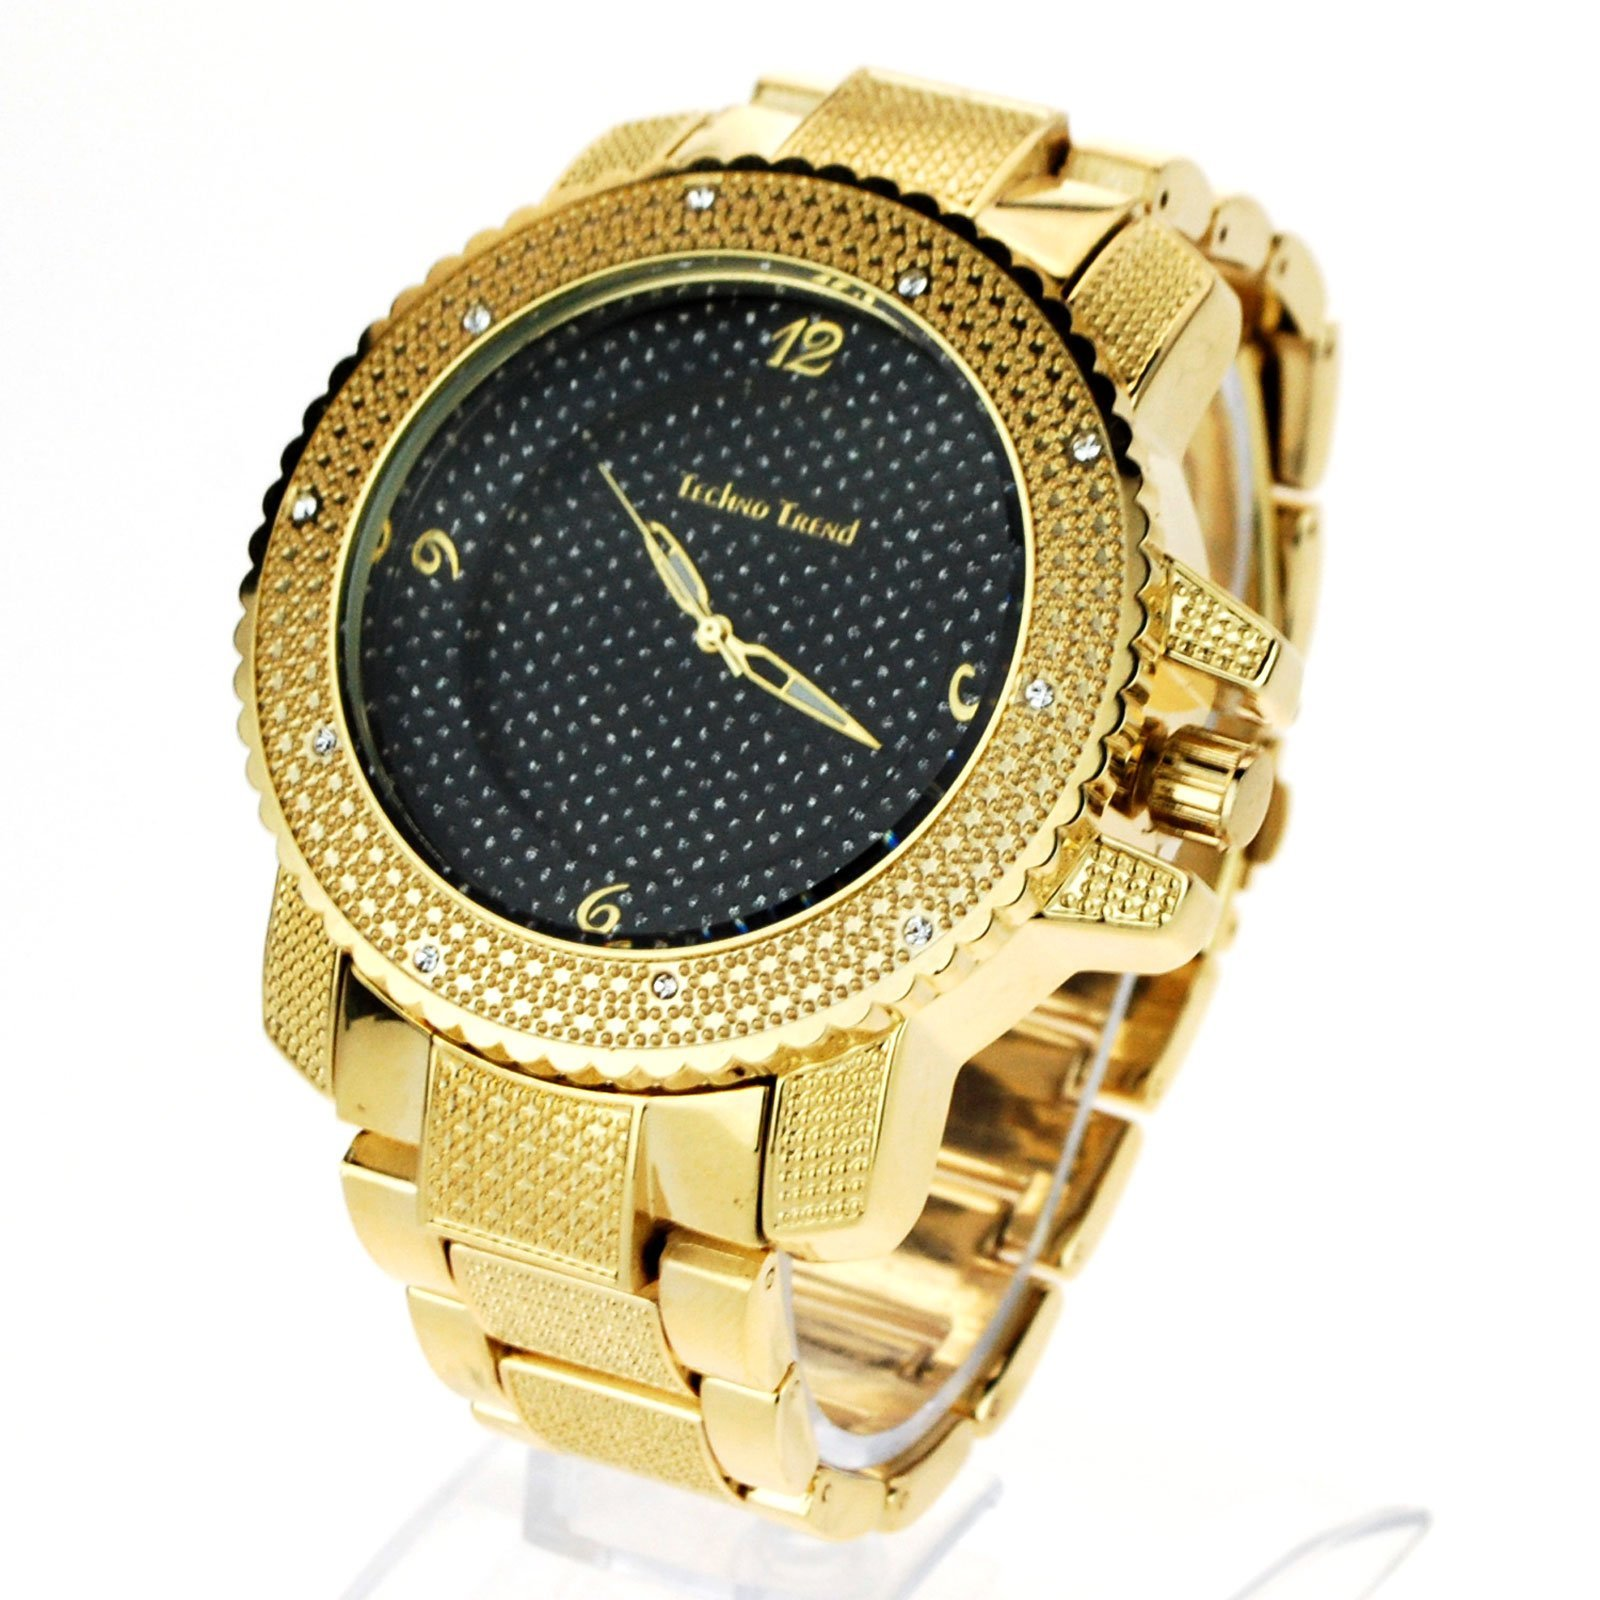 c65e568578f1 Techno Mens Hip Hop Iced Out Luxury Baller and 50 similar items